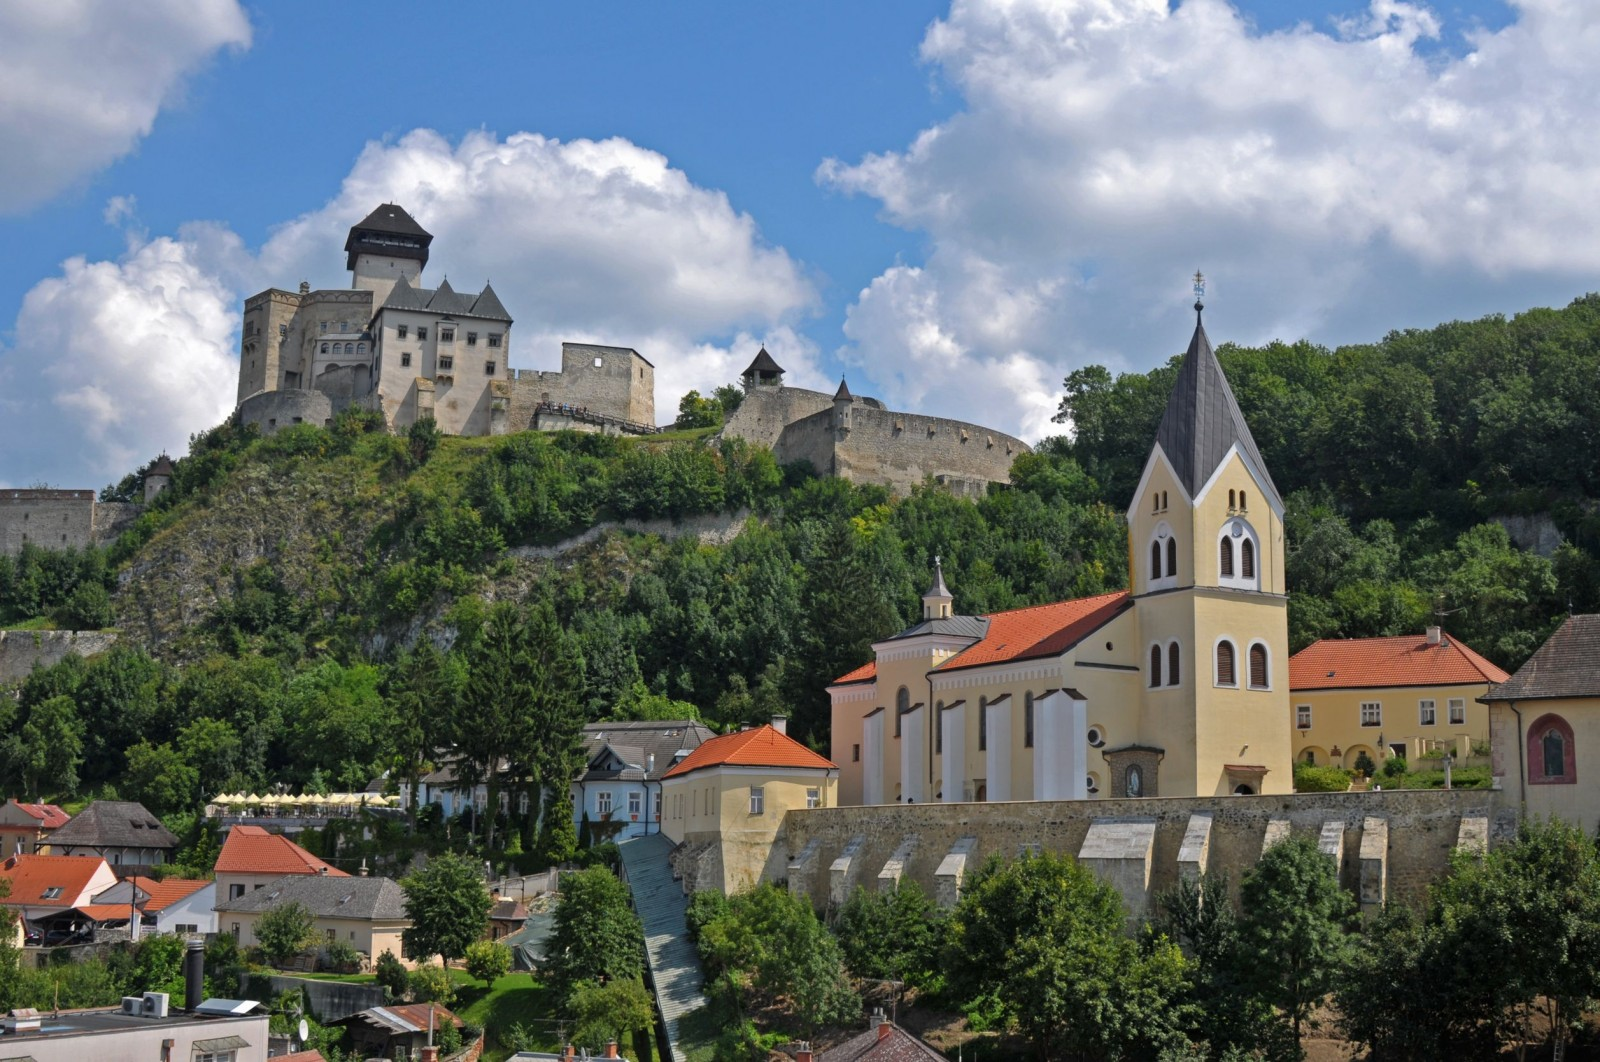 Trencin and its castle